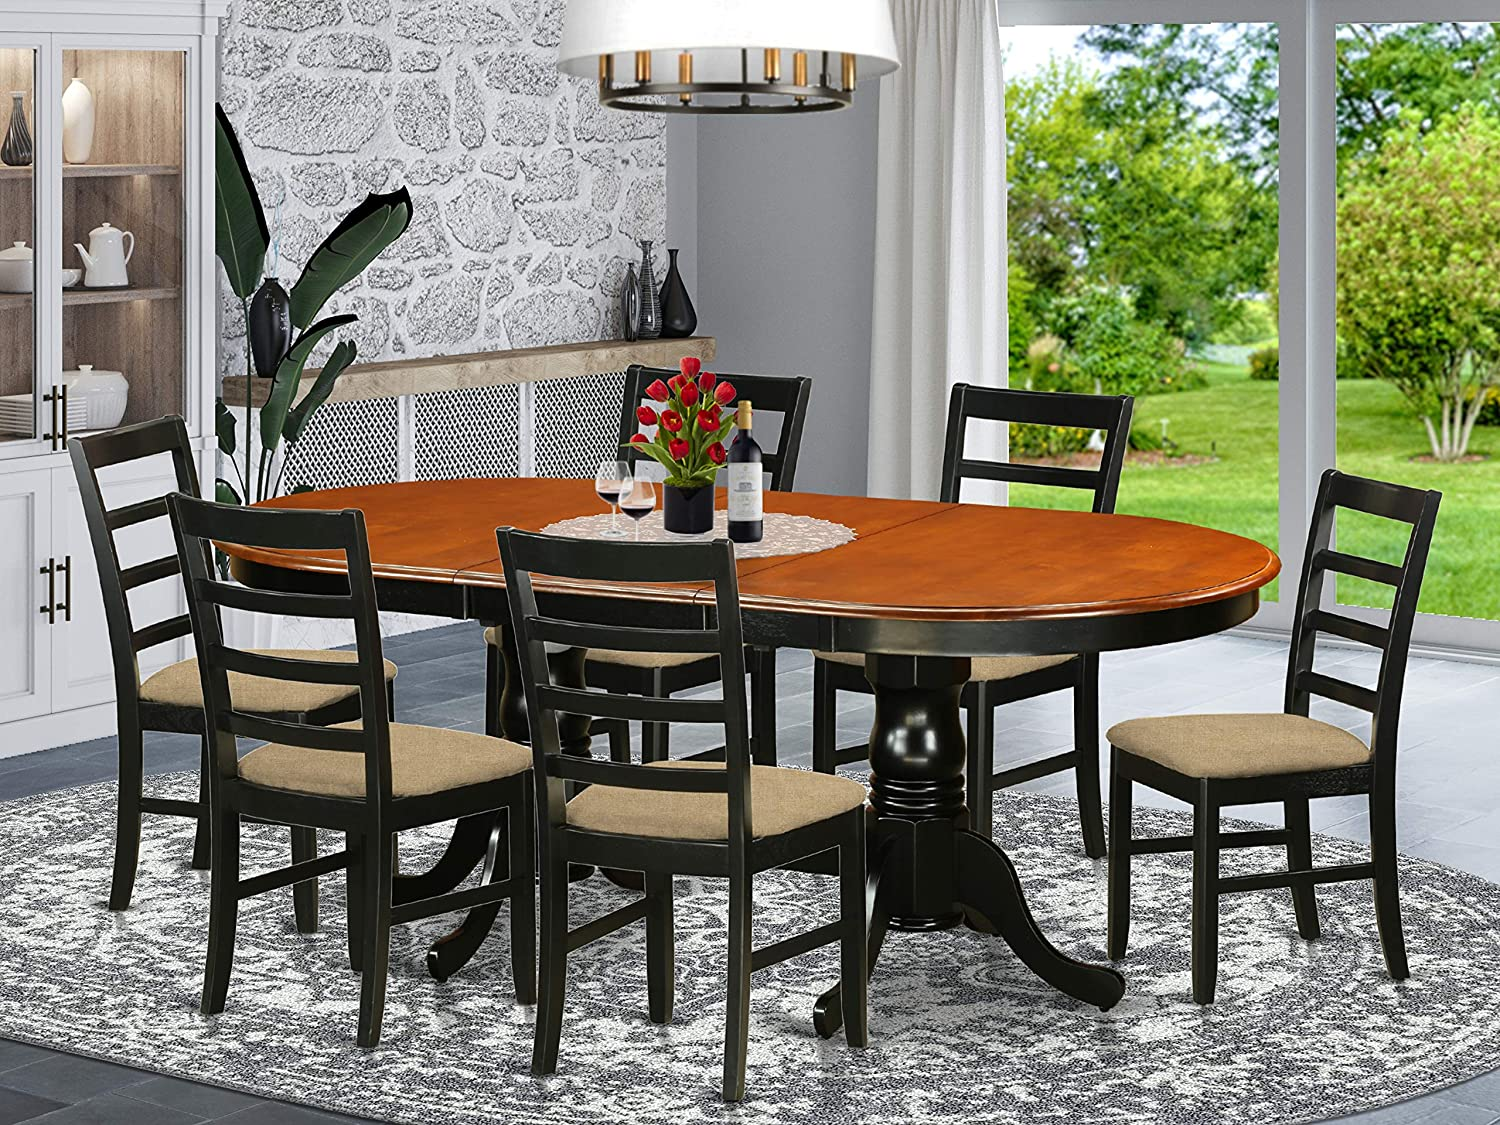 7 PC Dining room set-Dining Table with Popular brand in the world Chairs Wooden High quality new 6